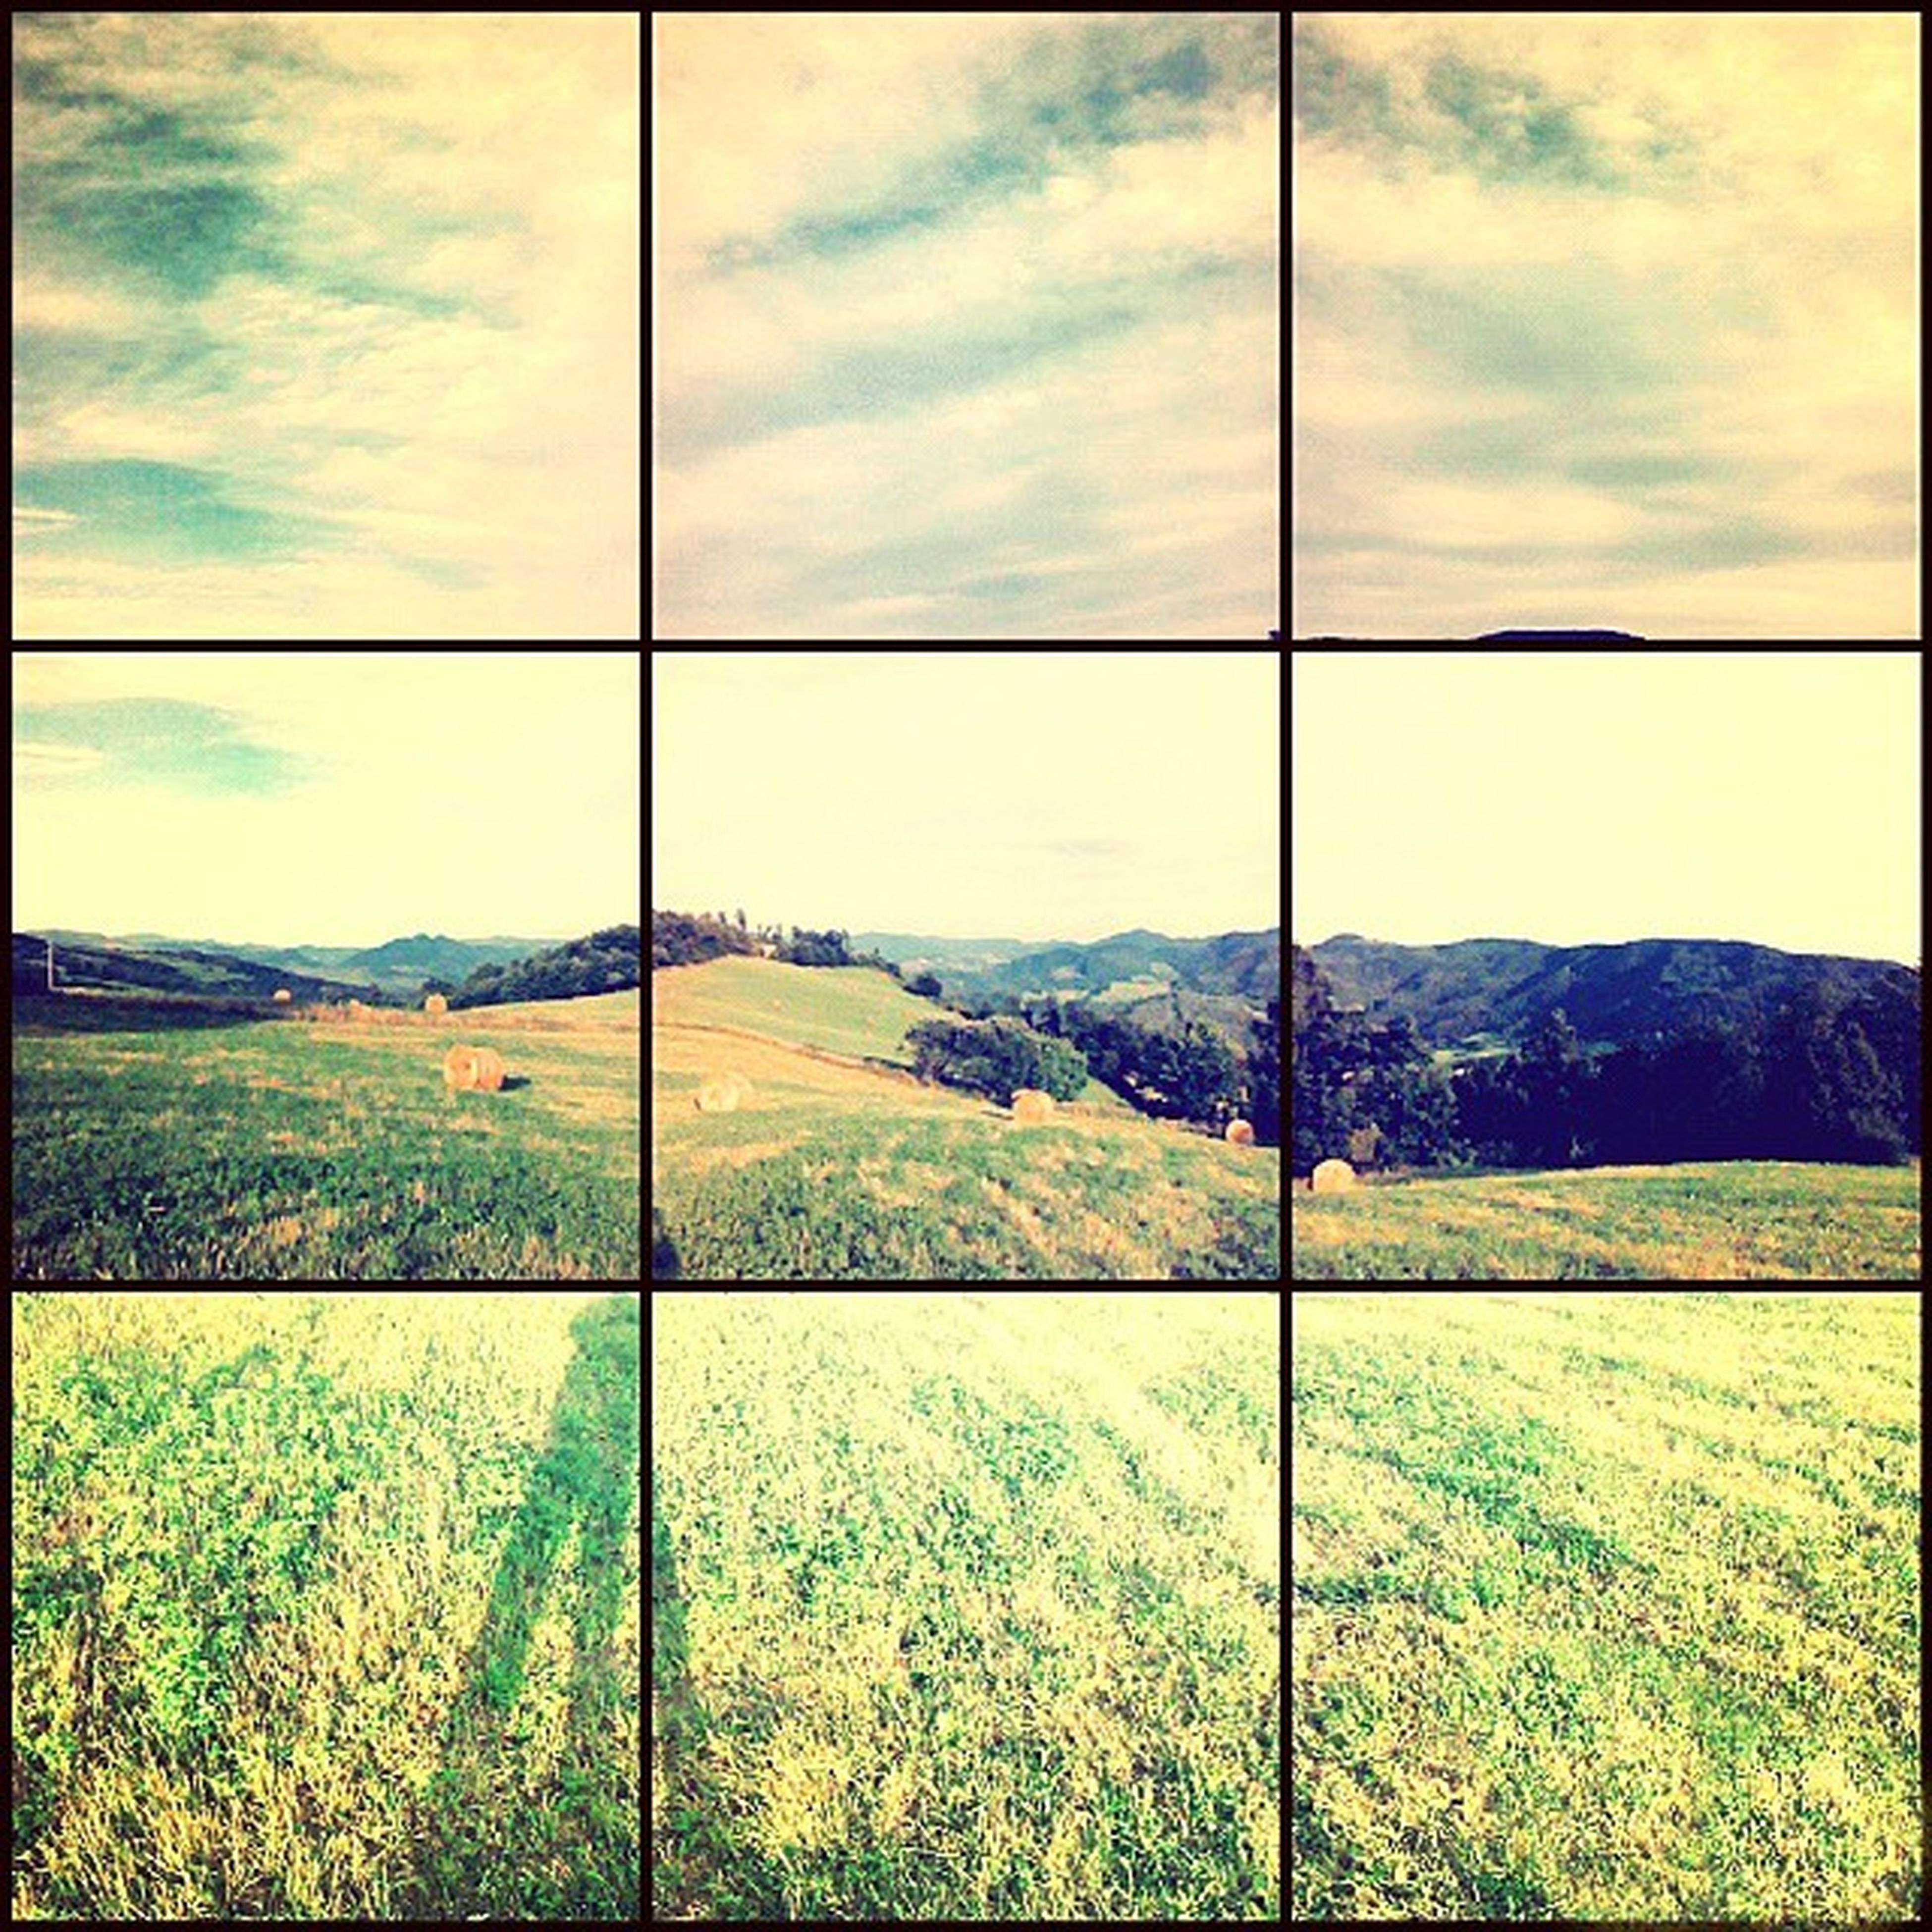 landscape, sky, mountain, tranquil scene, tranquility, grass, scenics, field, beauty in nature, cloud, cloud - sky, nature, transfer print, green color, mountain range, non-urban scene, rural scene, countryside, grassy, horizon over land